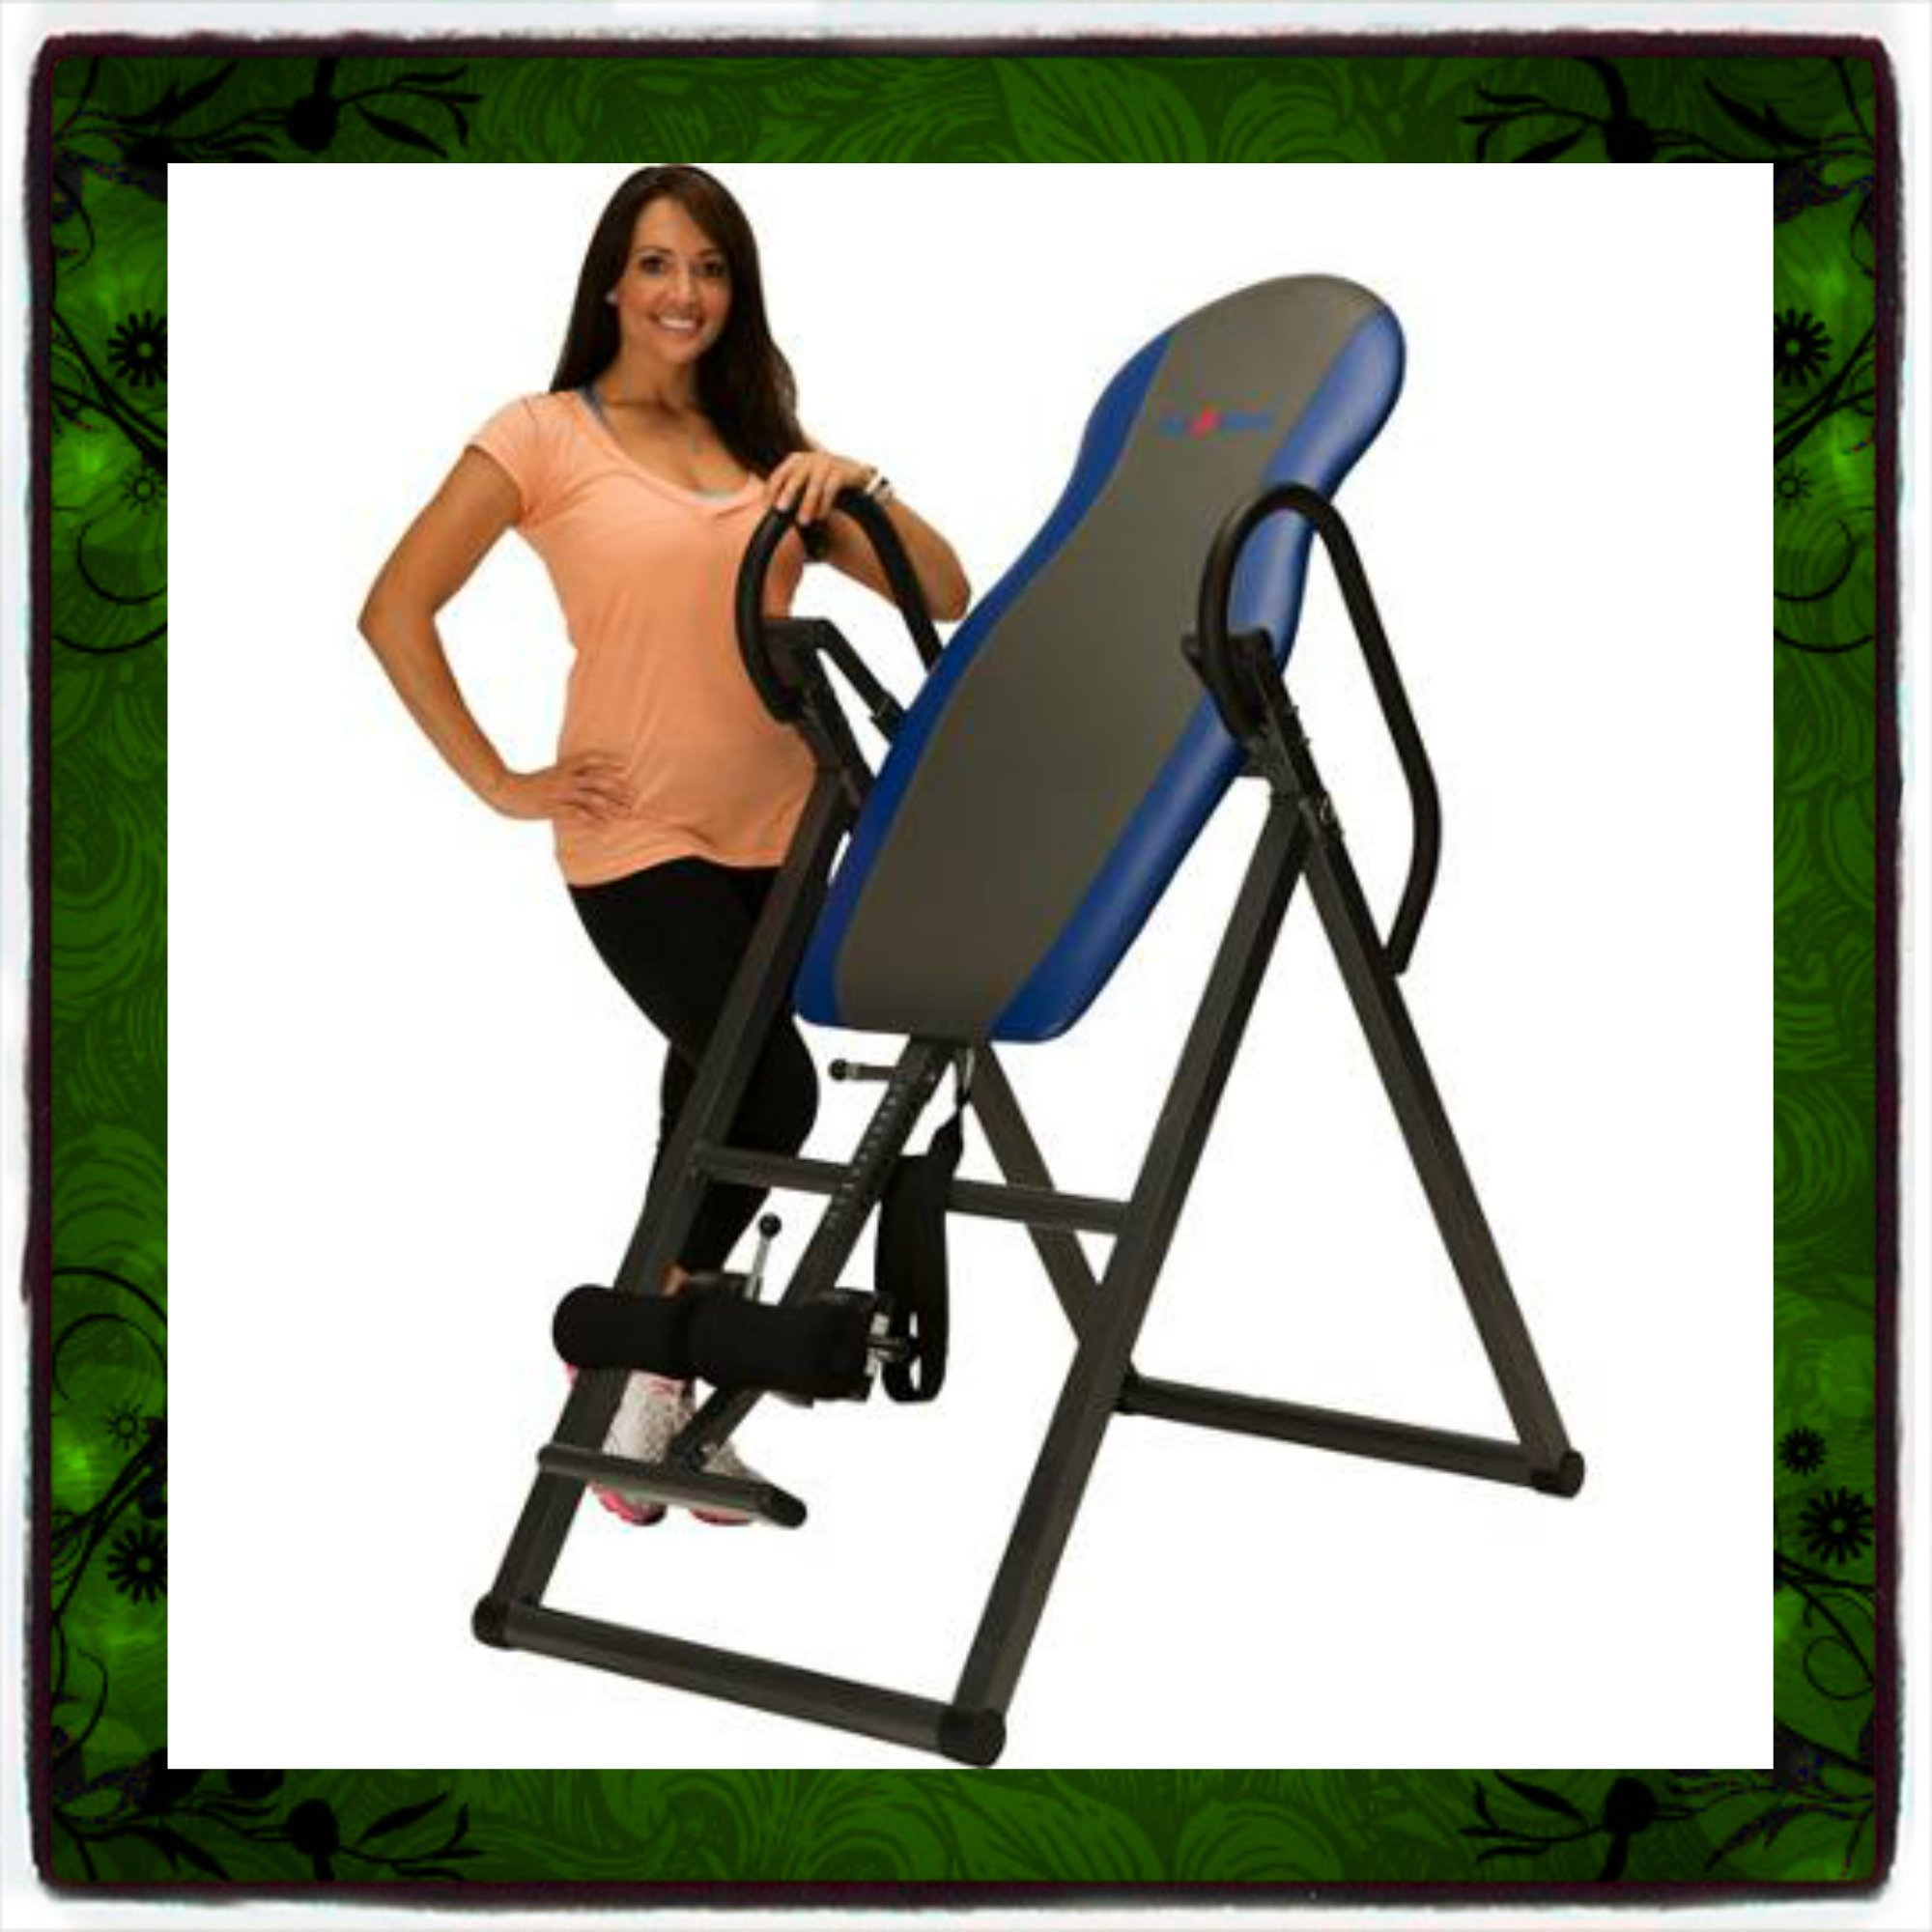 Inversion Table Deluxe Curved Chiropractic Fitness Exercise & Back Reflexology System Tables Therapy Gravity Hang Relief Ups Pain Teeter New Ironman Folding Foldable up Boots Home Gym Yoga Gyms Workout Sporting Goods Strength Training Relaxation Cardiovas